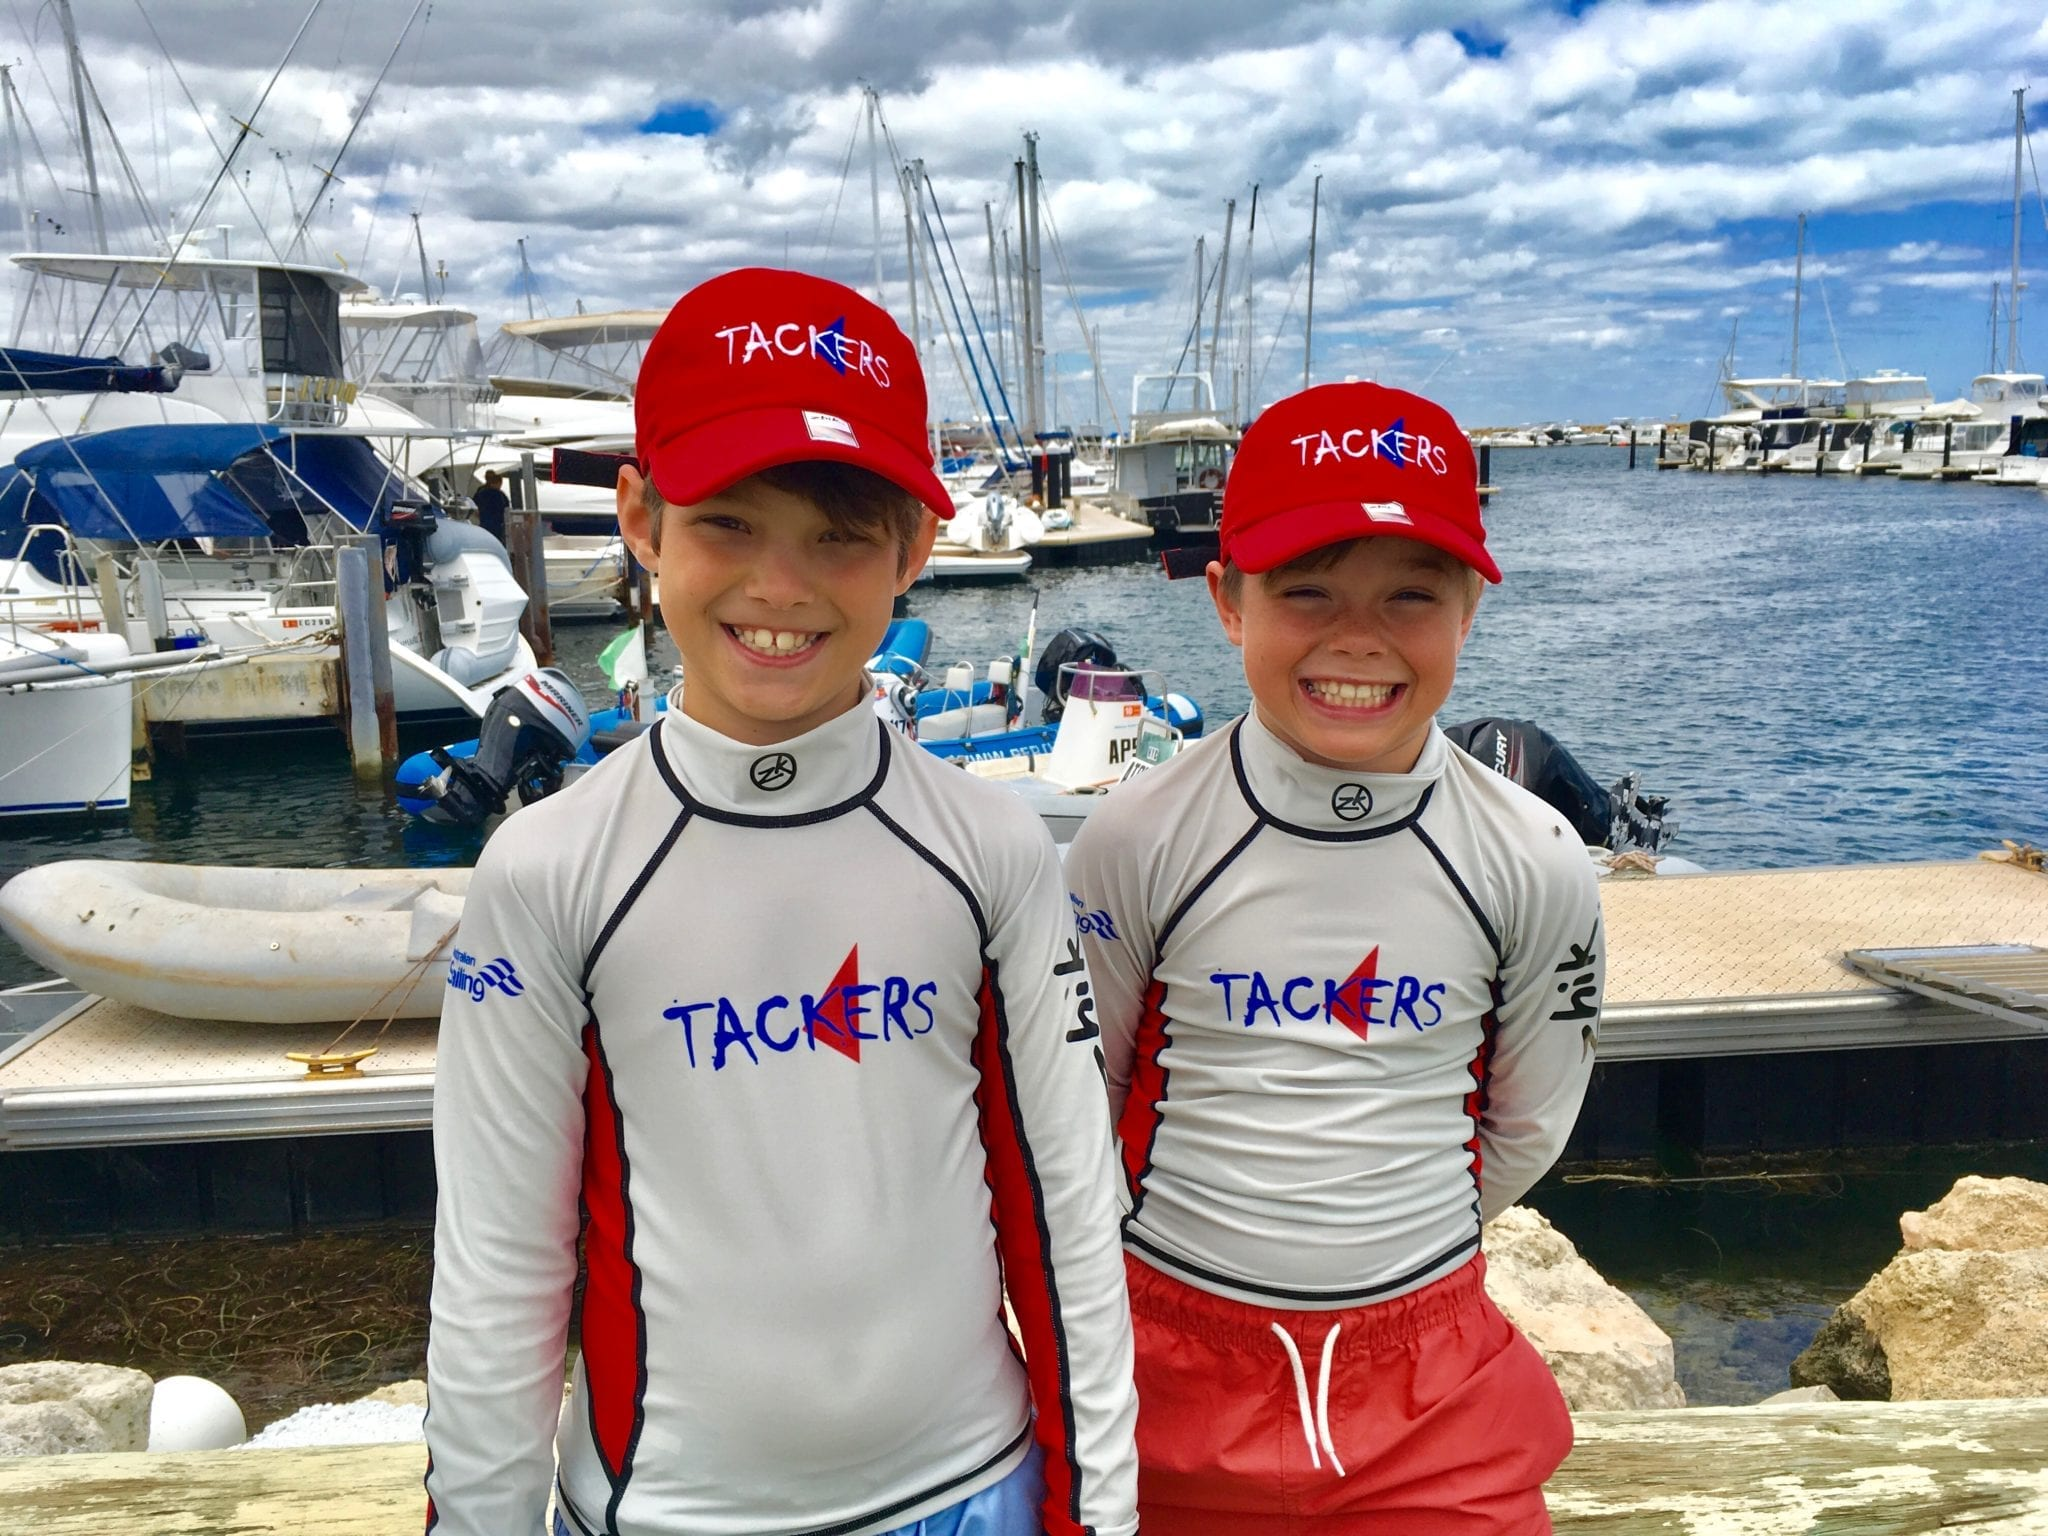 Kids Sailing Perth - Tiny Tackers at Hillarys Yacht Club